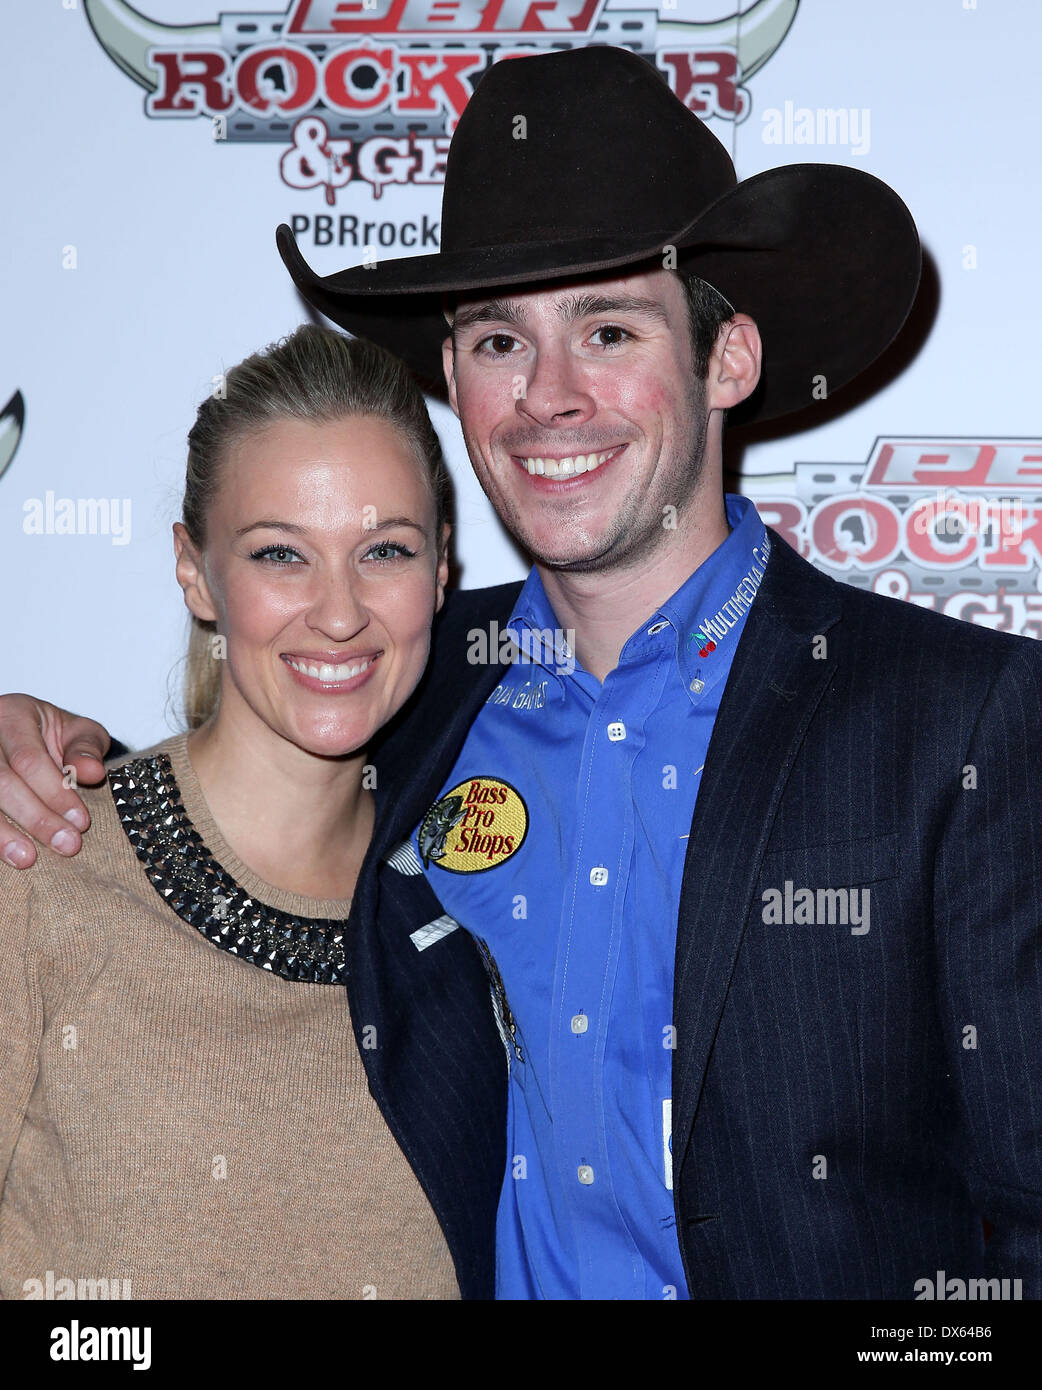 Jen Manna, Luke Snyder Professional Bull Rider Superstars walk the red carpet at PBR Rock Bar inside The Miracle Mile Shops at Planet Hollywood Resort and Casino Las Vegas, Nevada - 26.10.12 Featuring: Jen Manna, Luke Snyder Where: United States When: 26 Oct 2012 - Stock Image